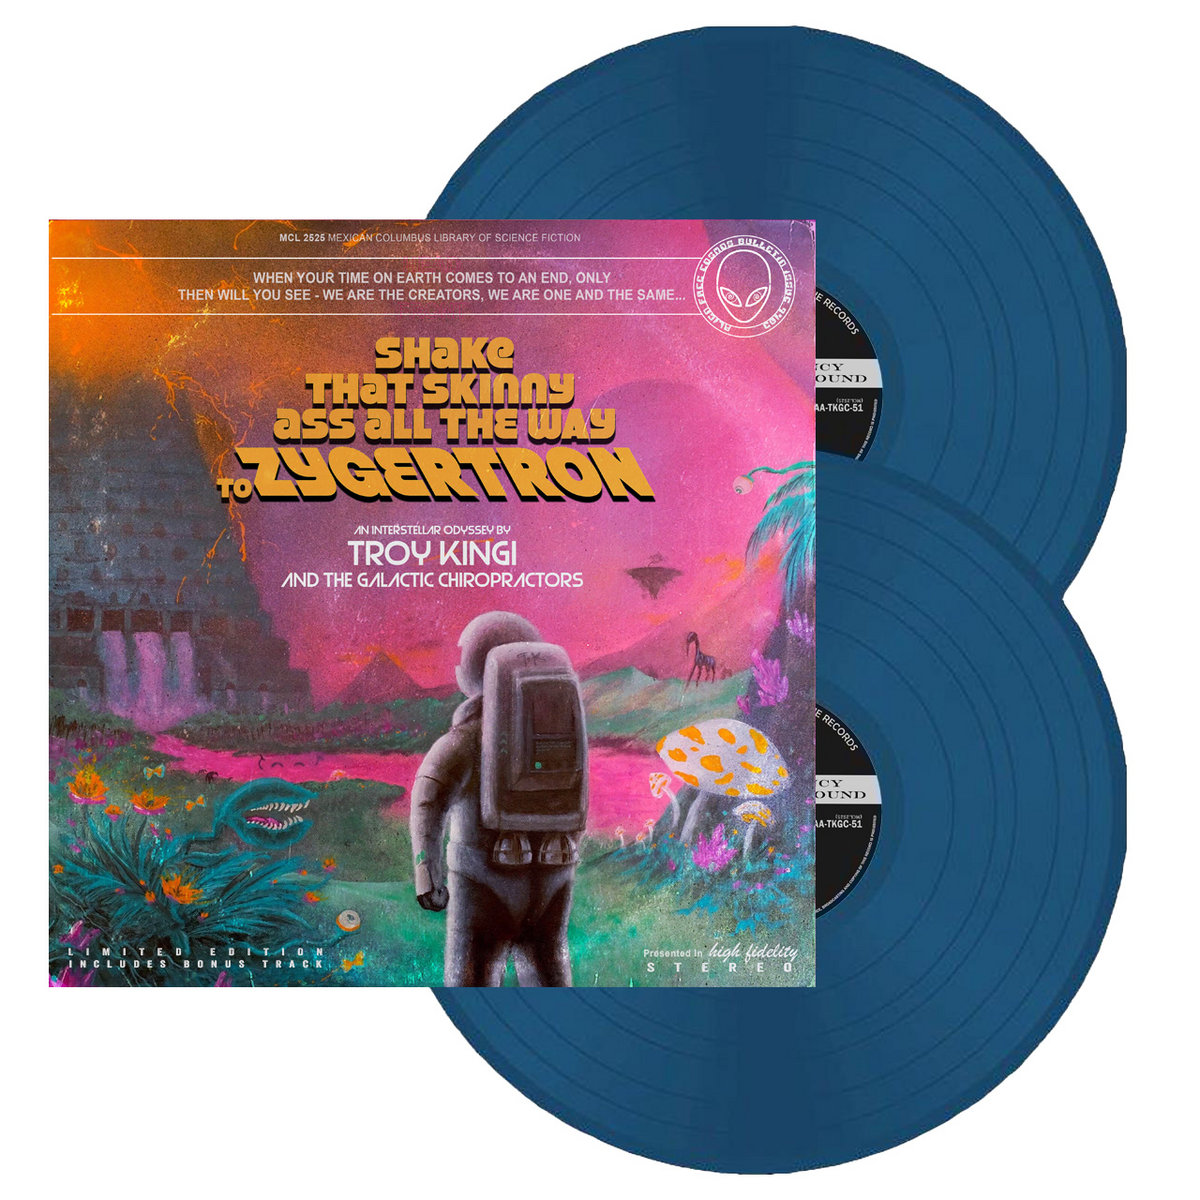 Limited Edition Double Coloured Vinyl With Bonus Track